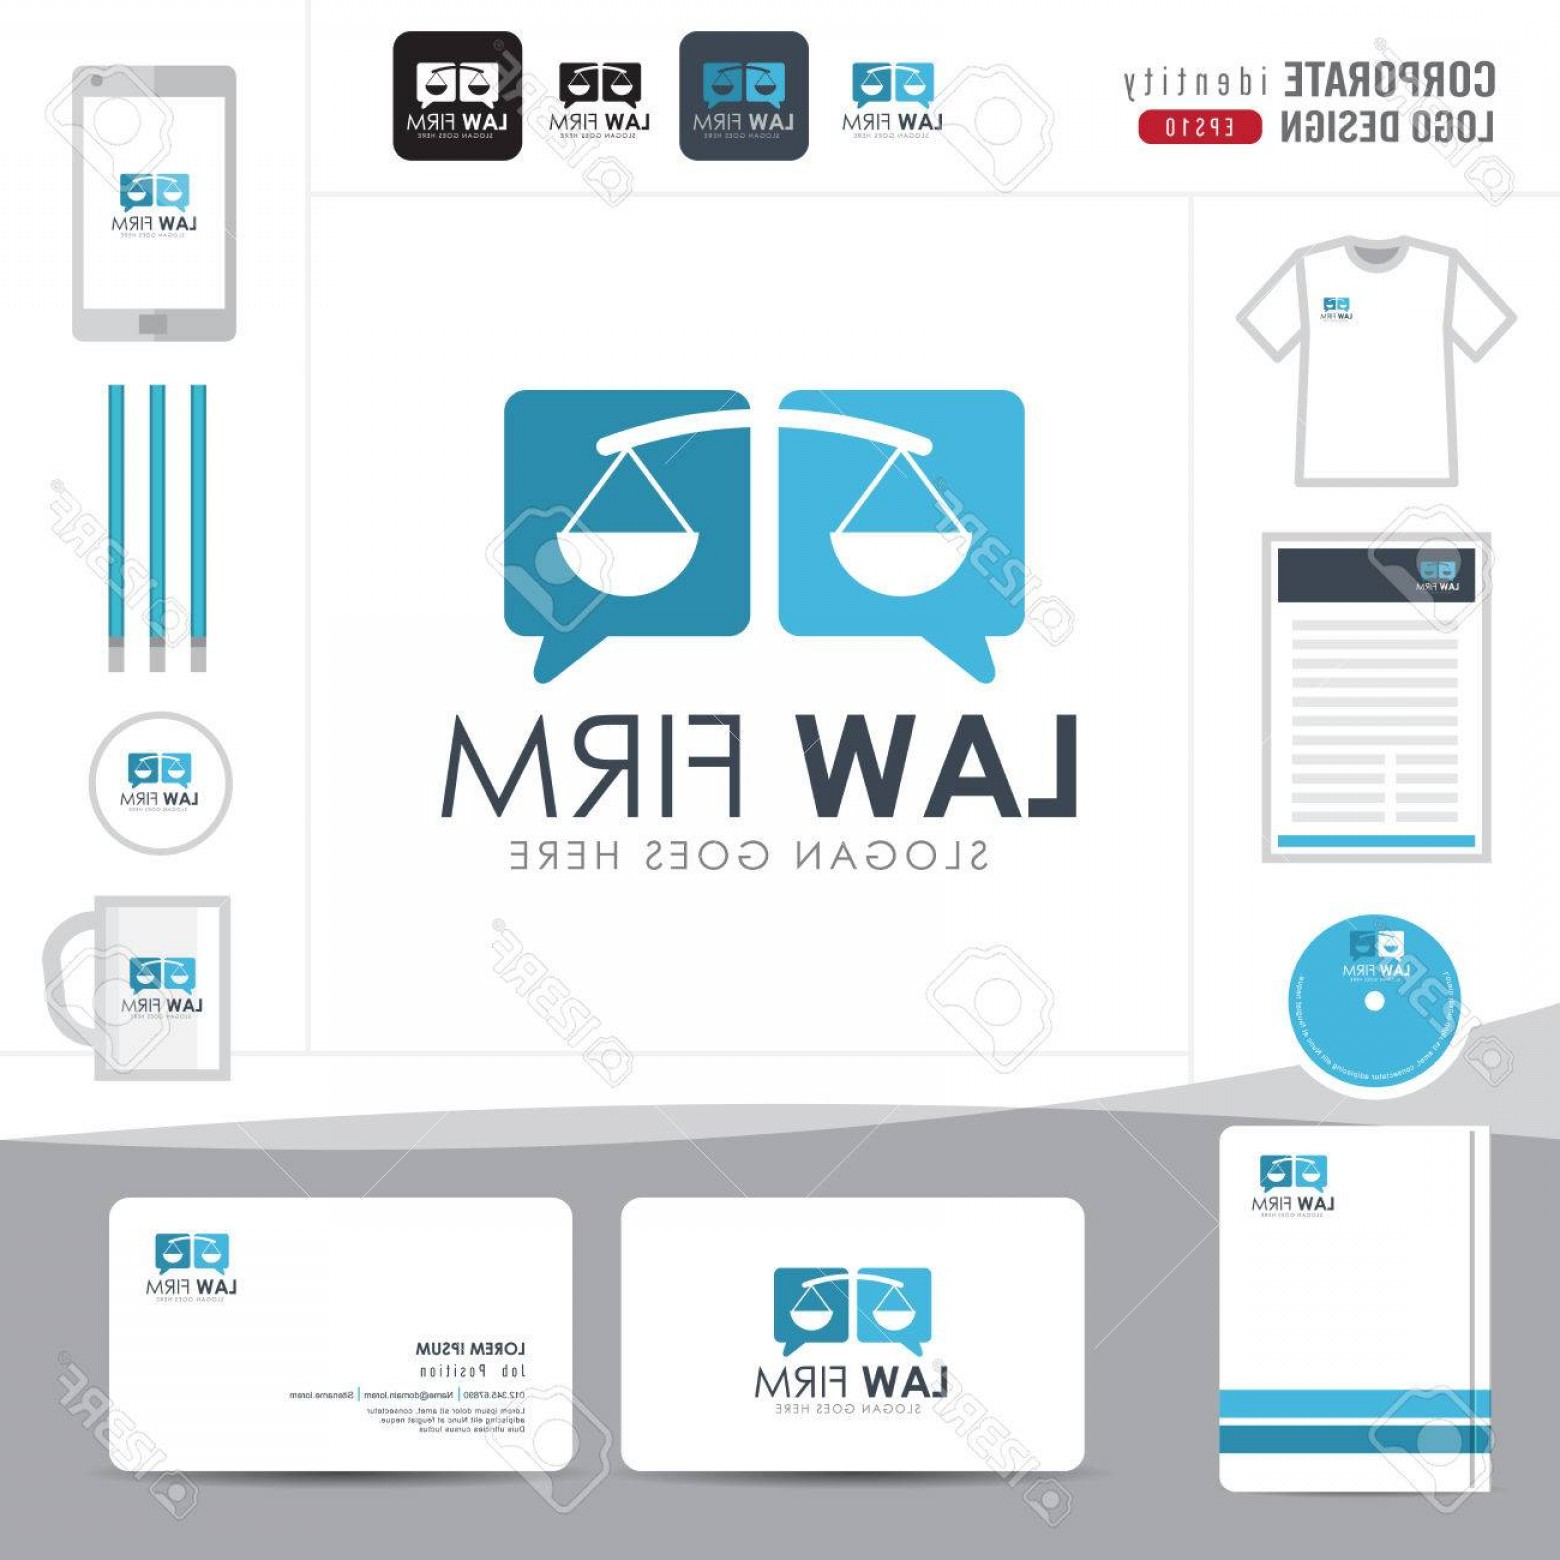 BBB Accredited Business Logo Vector: Photostock Vector Law Logo Law Firm Law Office Law Logotype Corporate Identity Template Corporate Identity Vector Illu